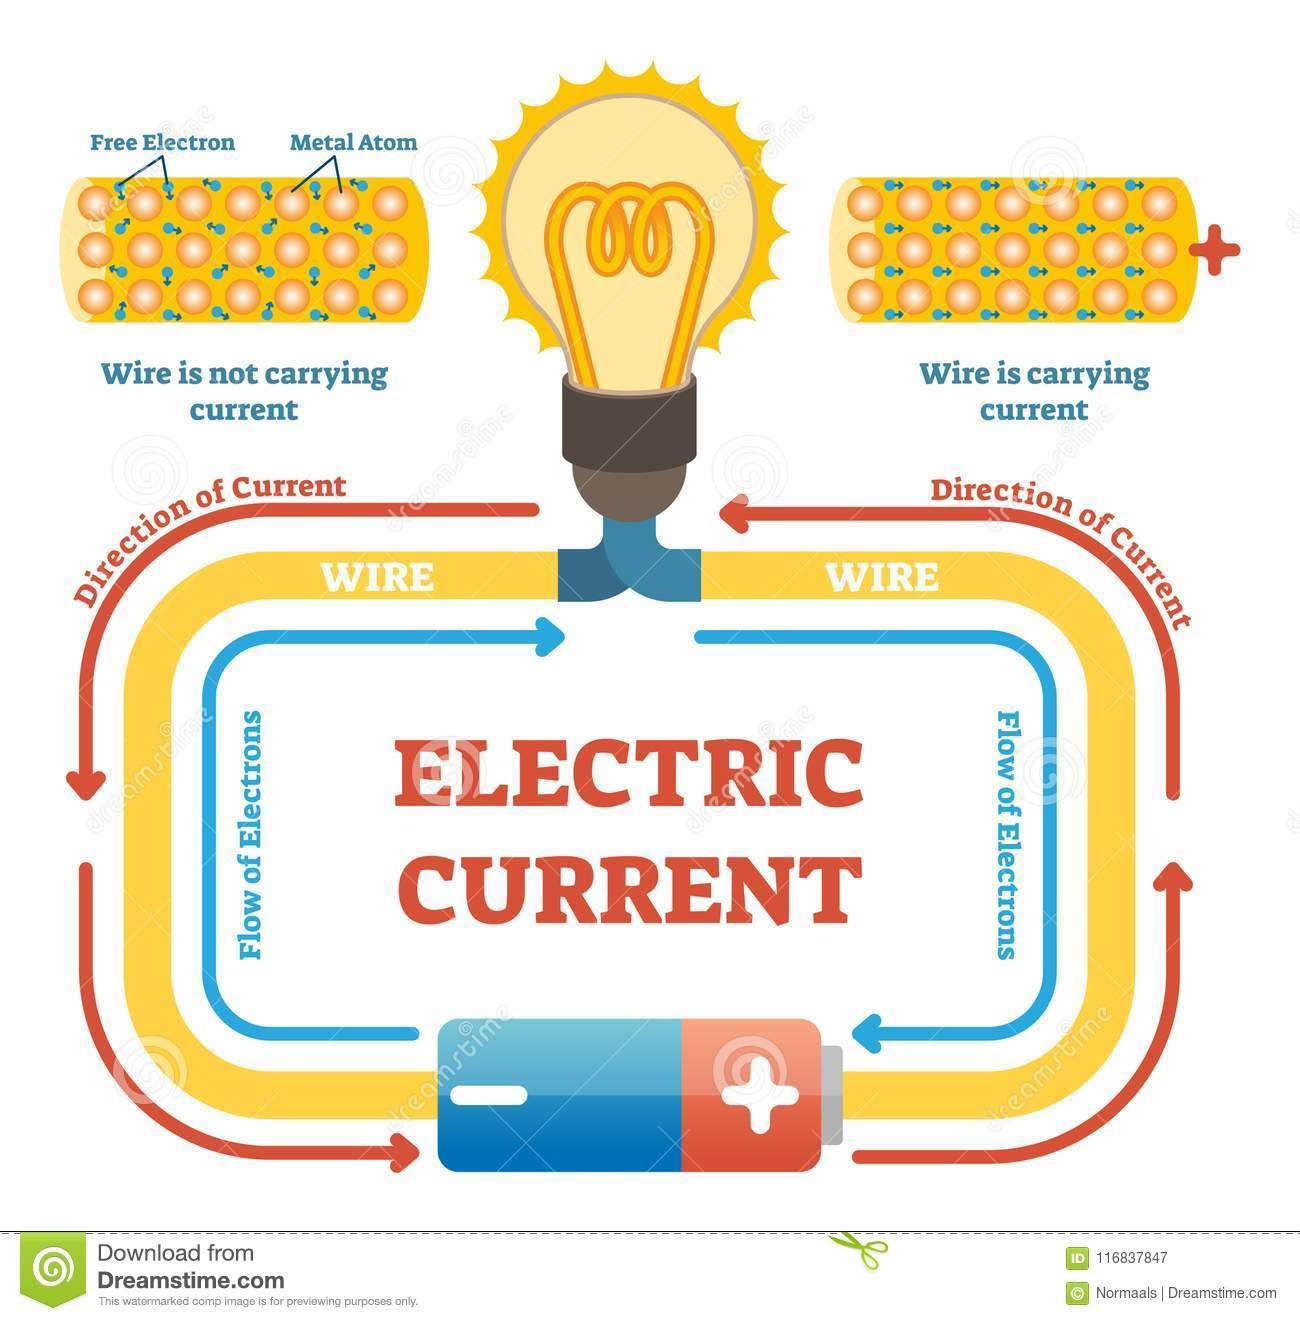 hight resolution of electric current concept example vector illustration electrical circuit diagram free electrons and metal atoms